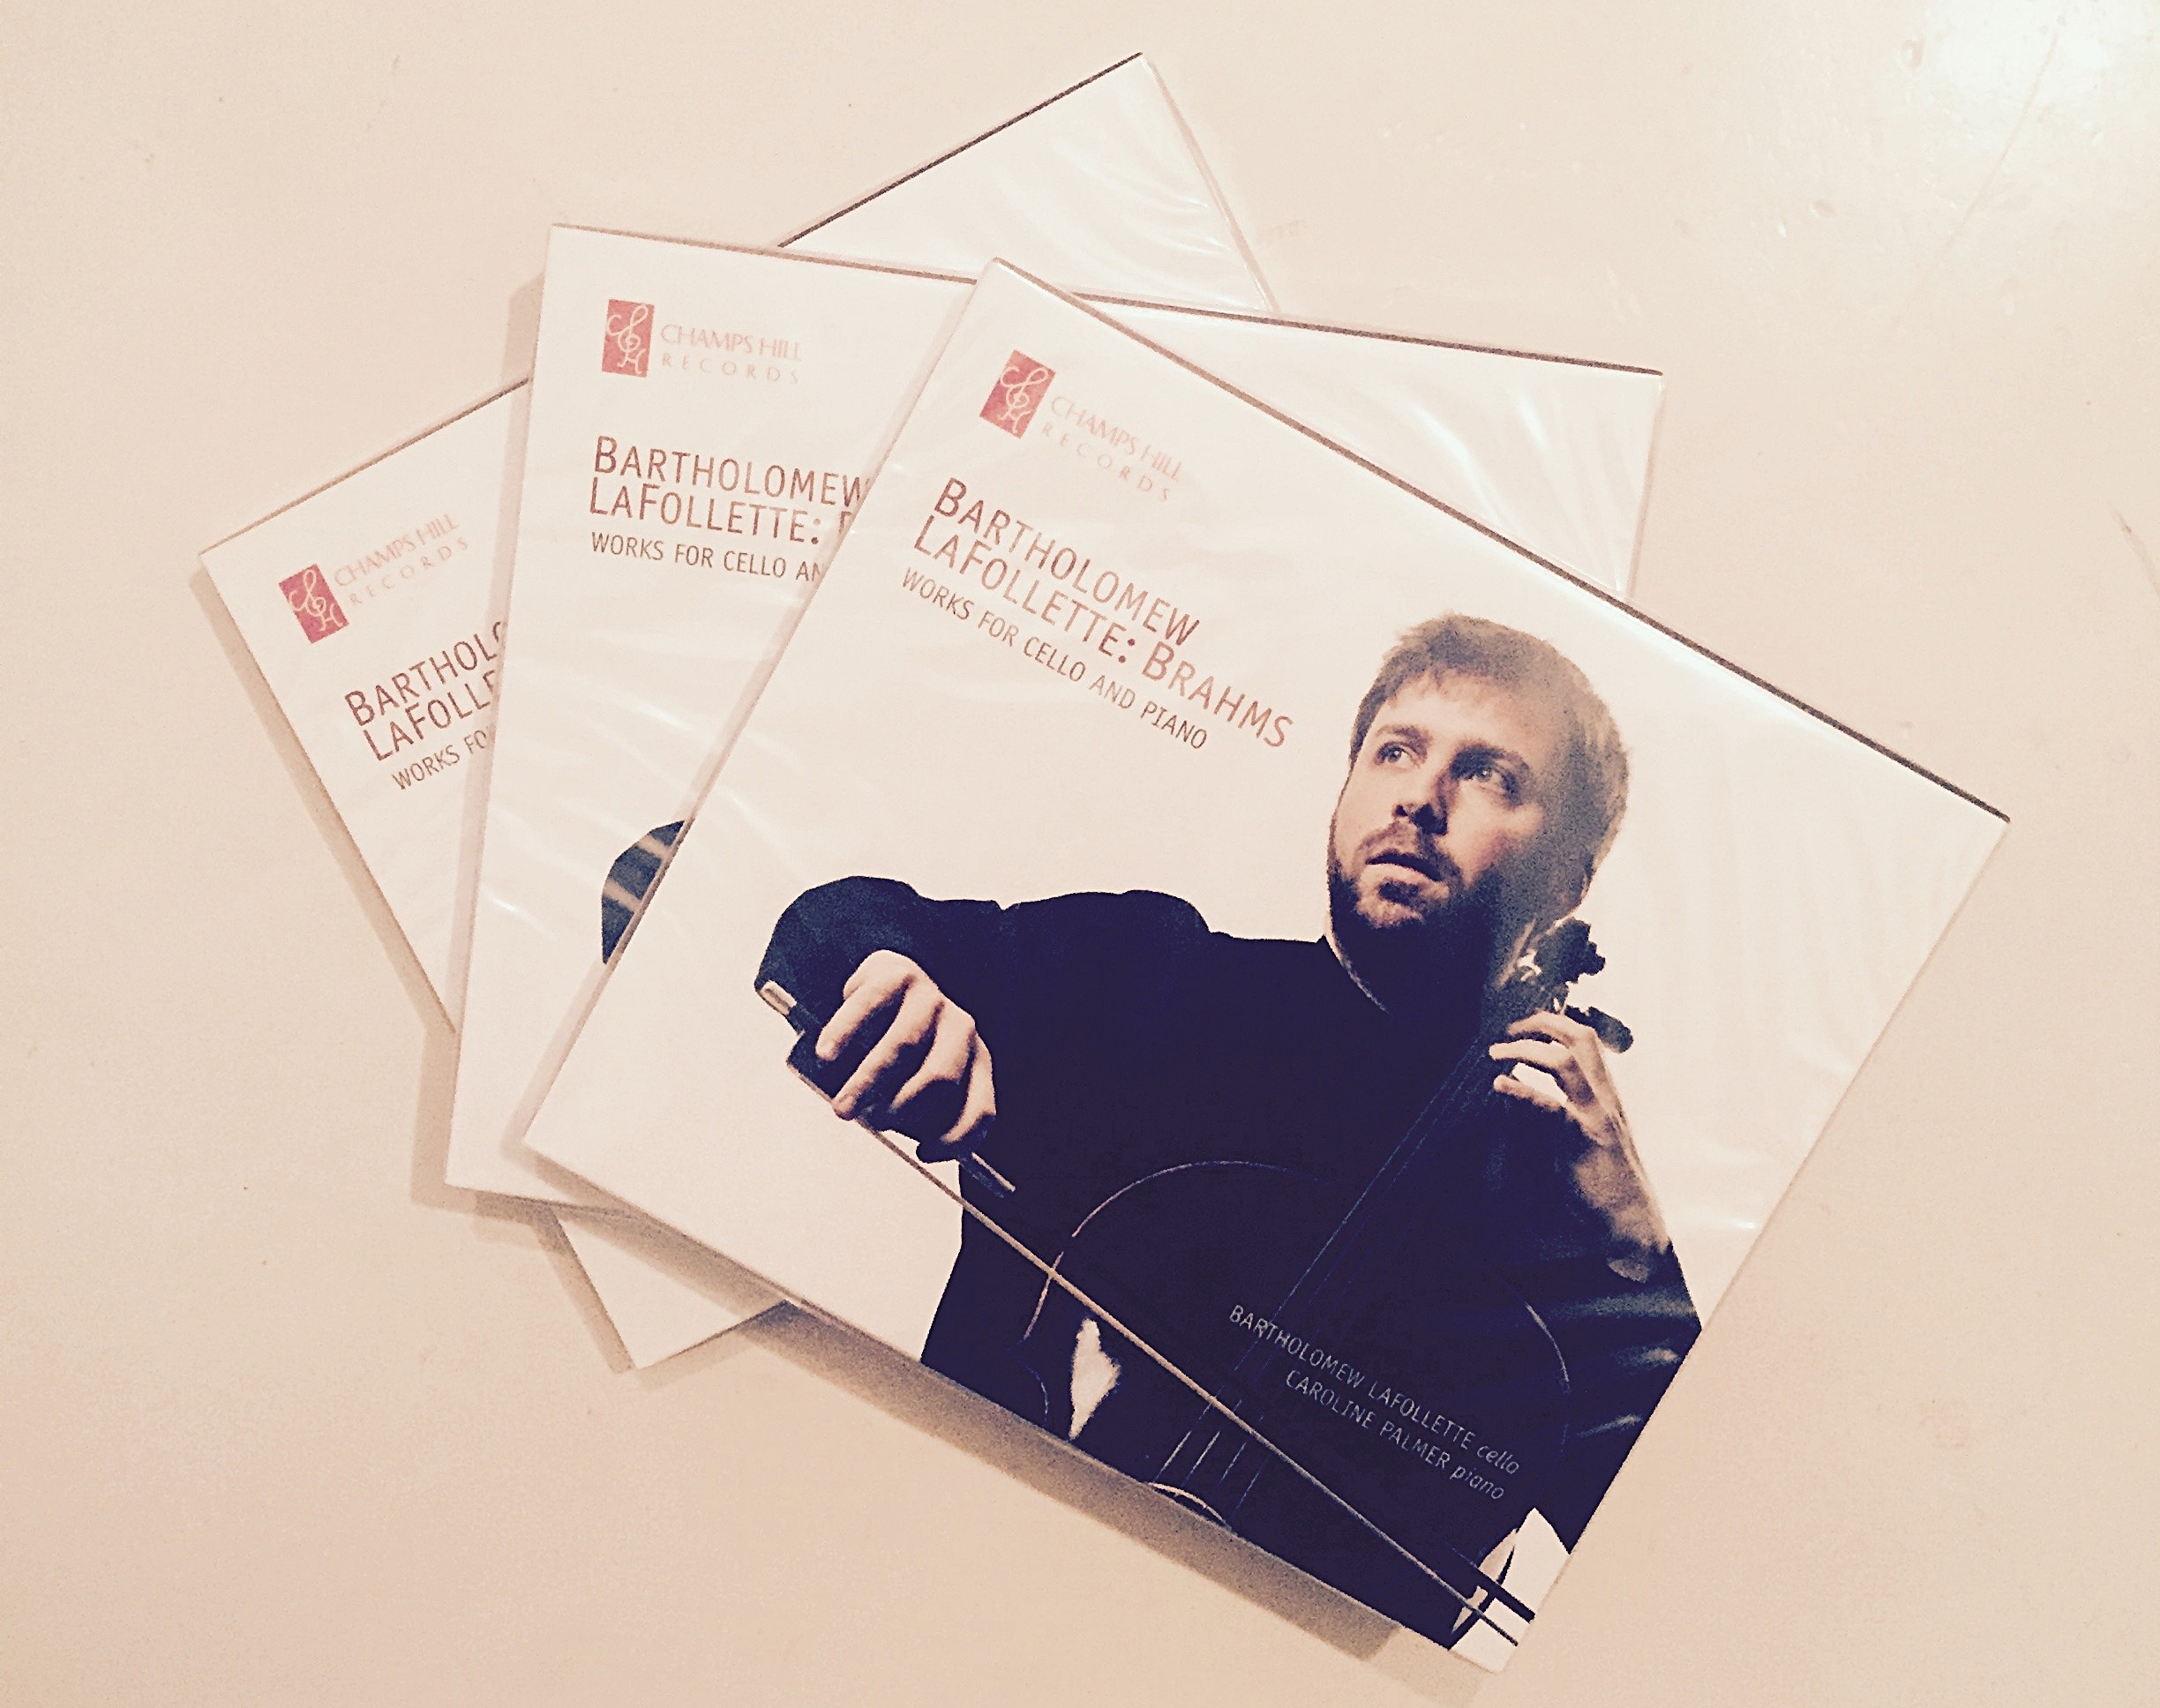 Bartholomew LaFollette and Caroline Palmer: Debut CD on the Champs Hill label out now! - Reviewed by The Strad Magazine, November 2017